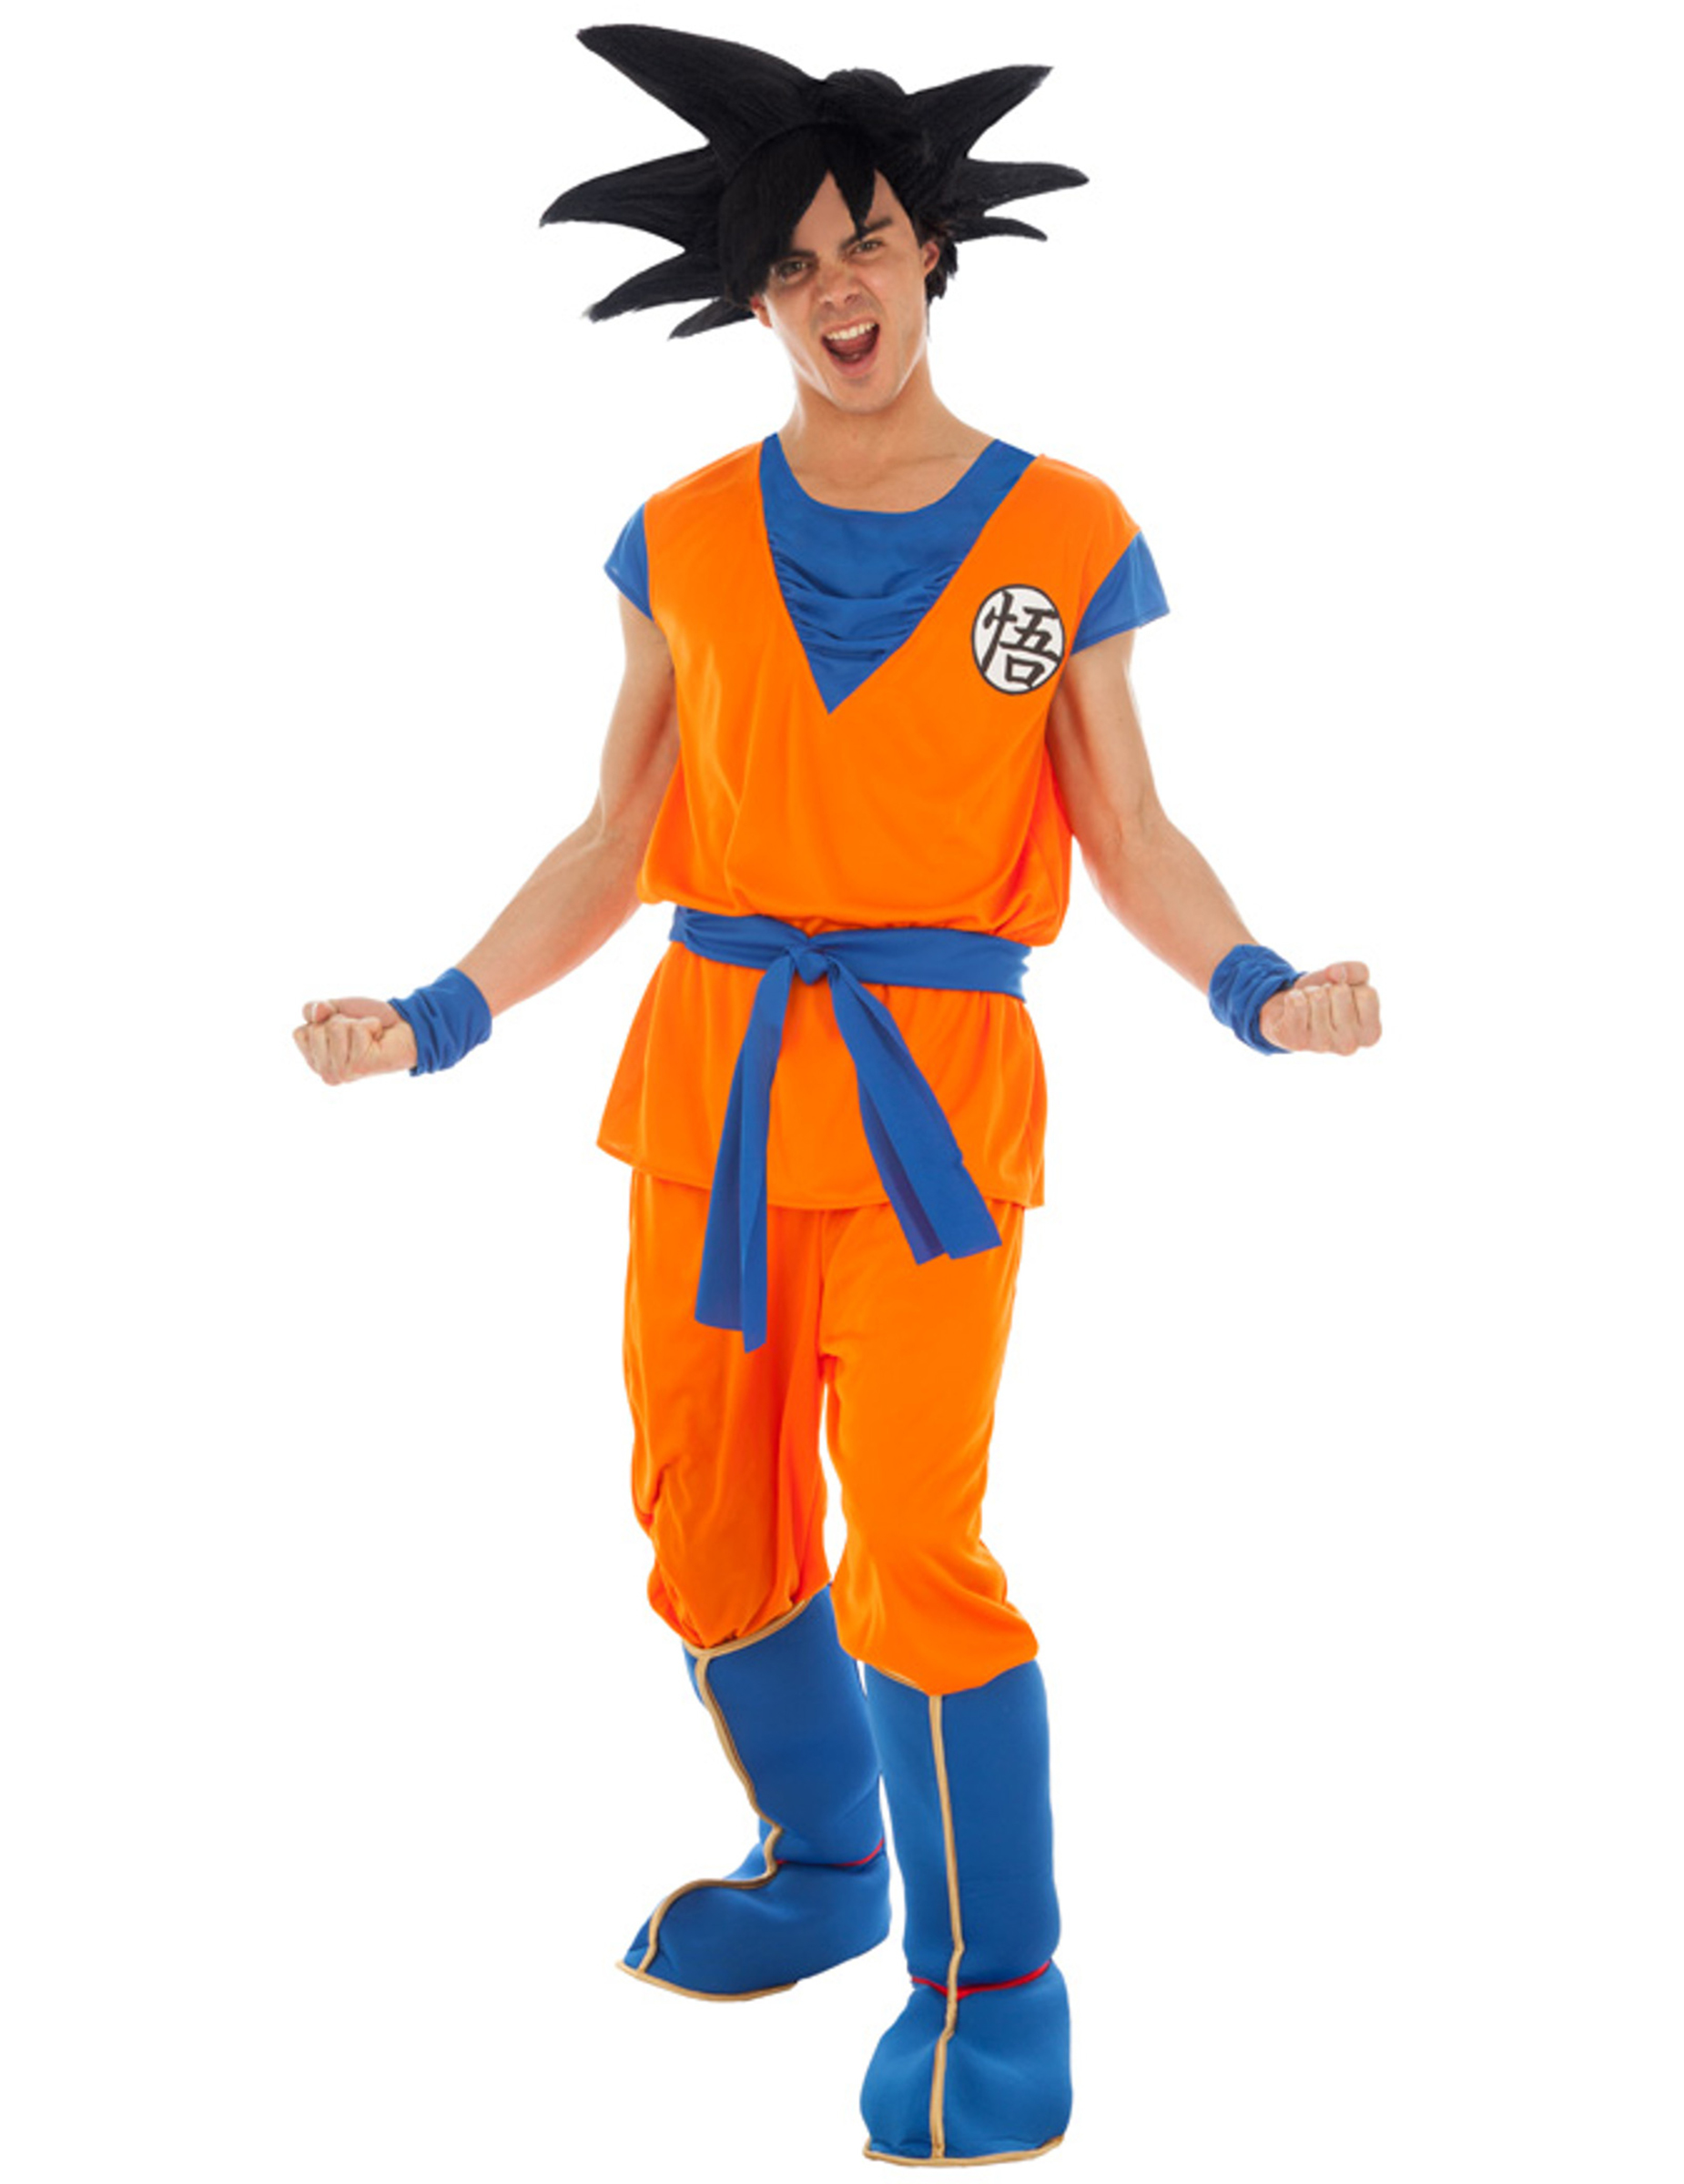 Disfraz Goku Saiyan Dragon Ball Z™ adulto  Disfraces adultos 8f504a360fa6